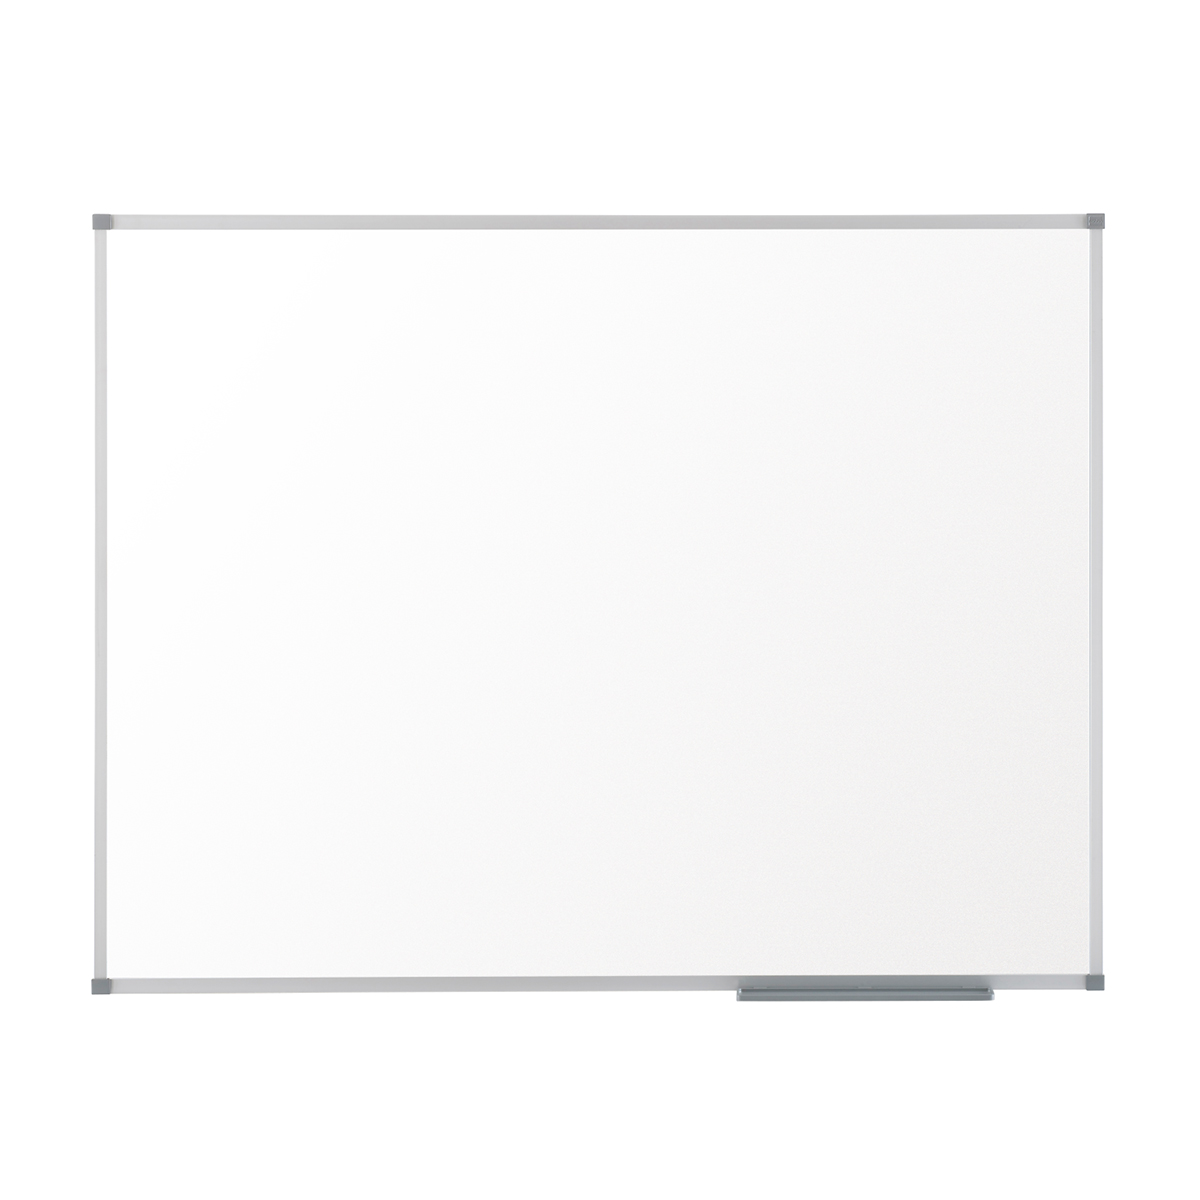 Nobo 1902642 Classic Steel Magnetic Whiteboard 900 x 600mm